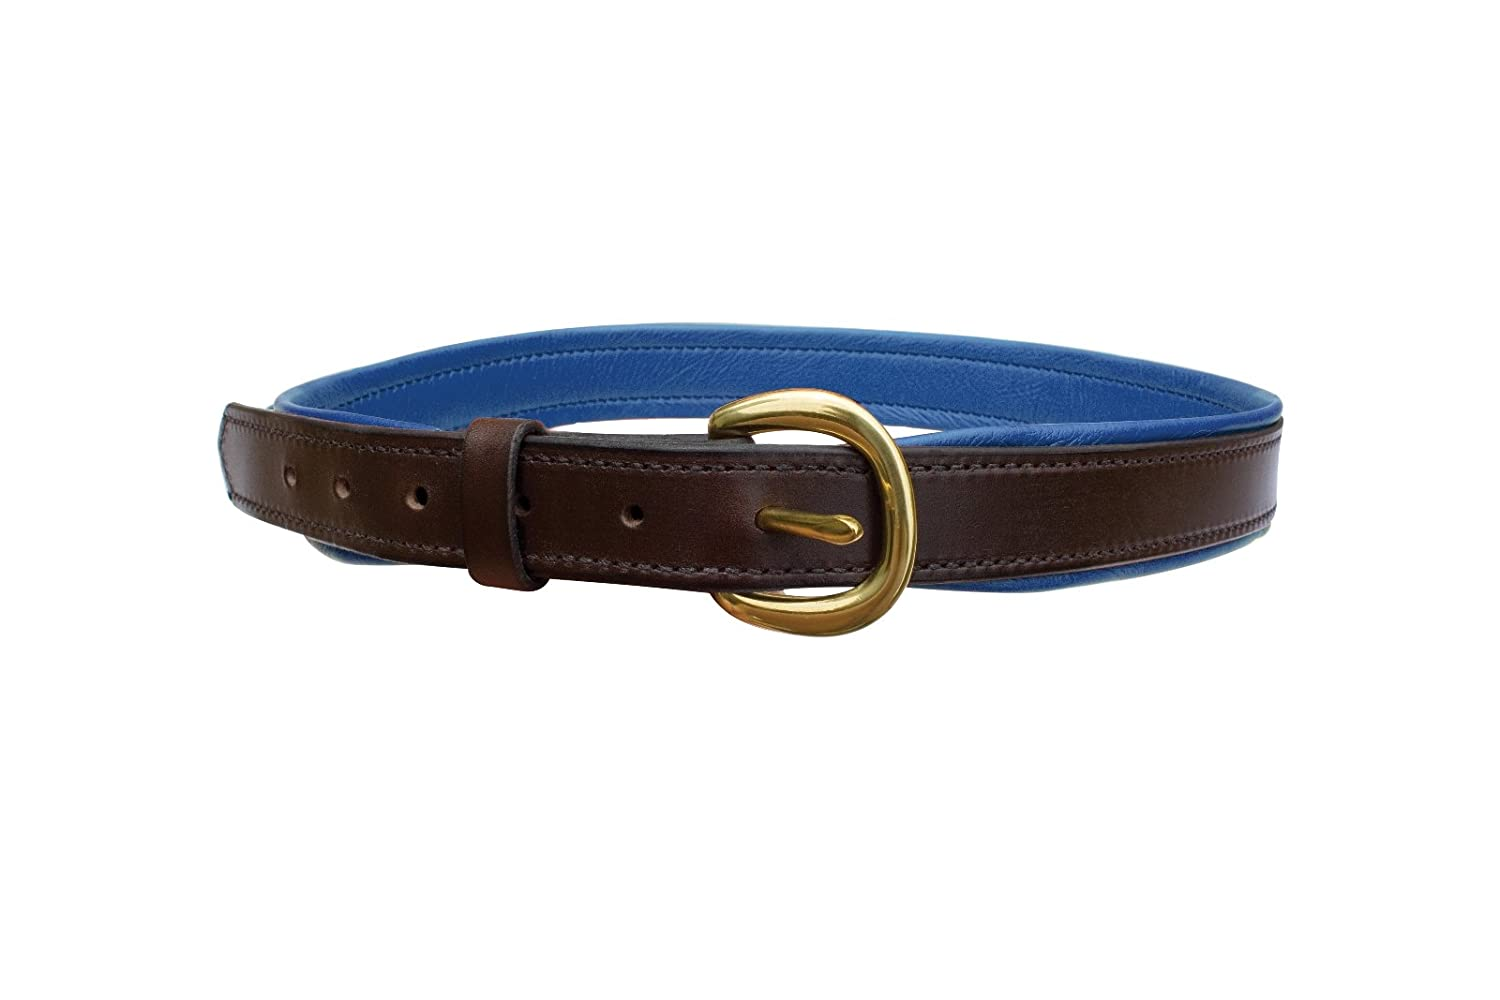 Perris Leather Havana with Brown Wide Padded Leather Belt